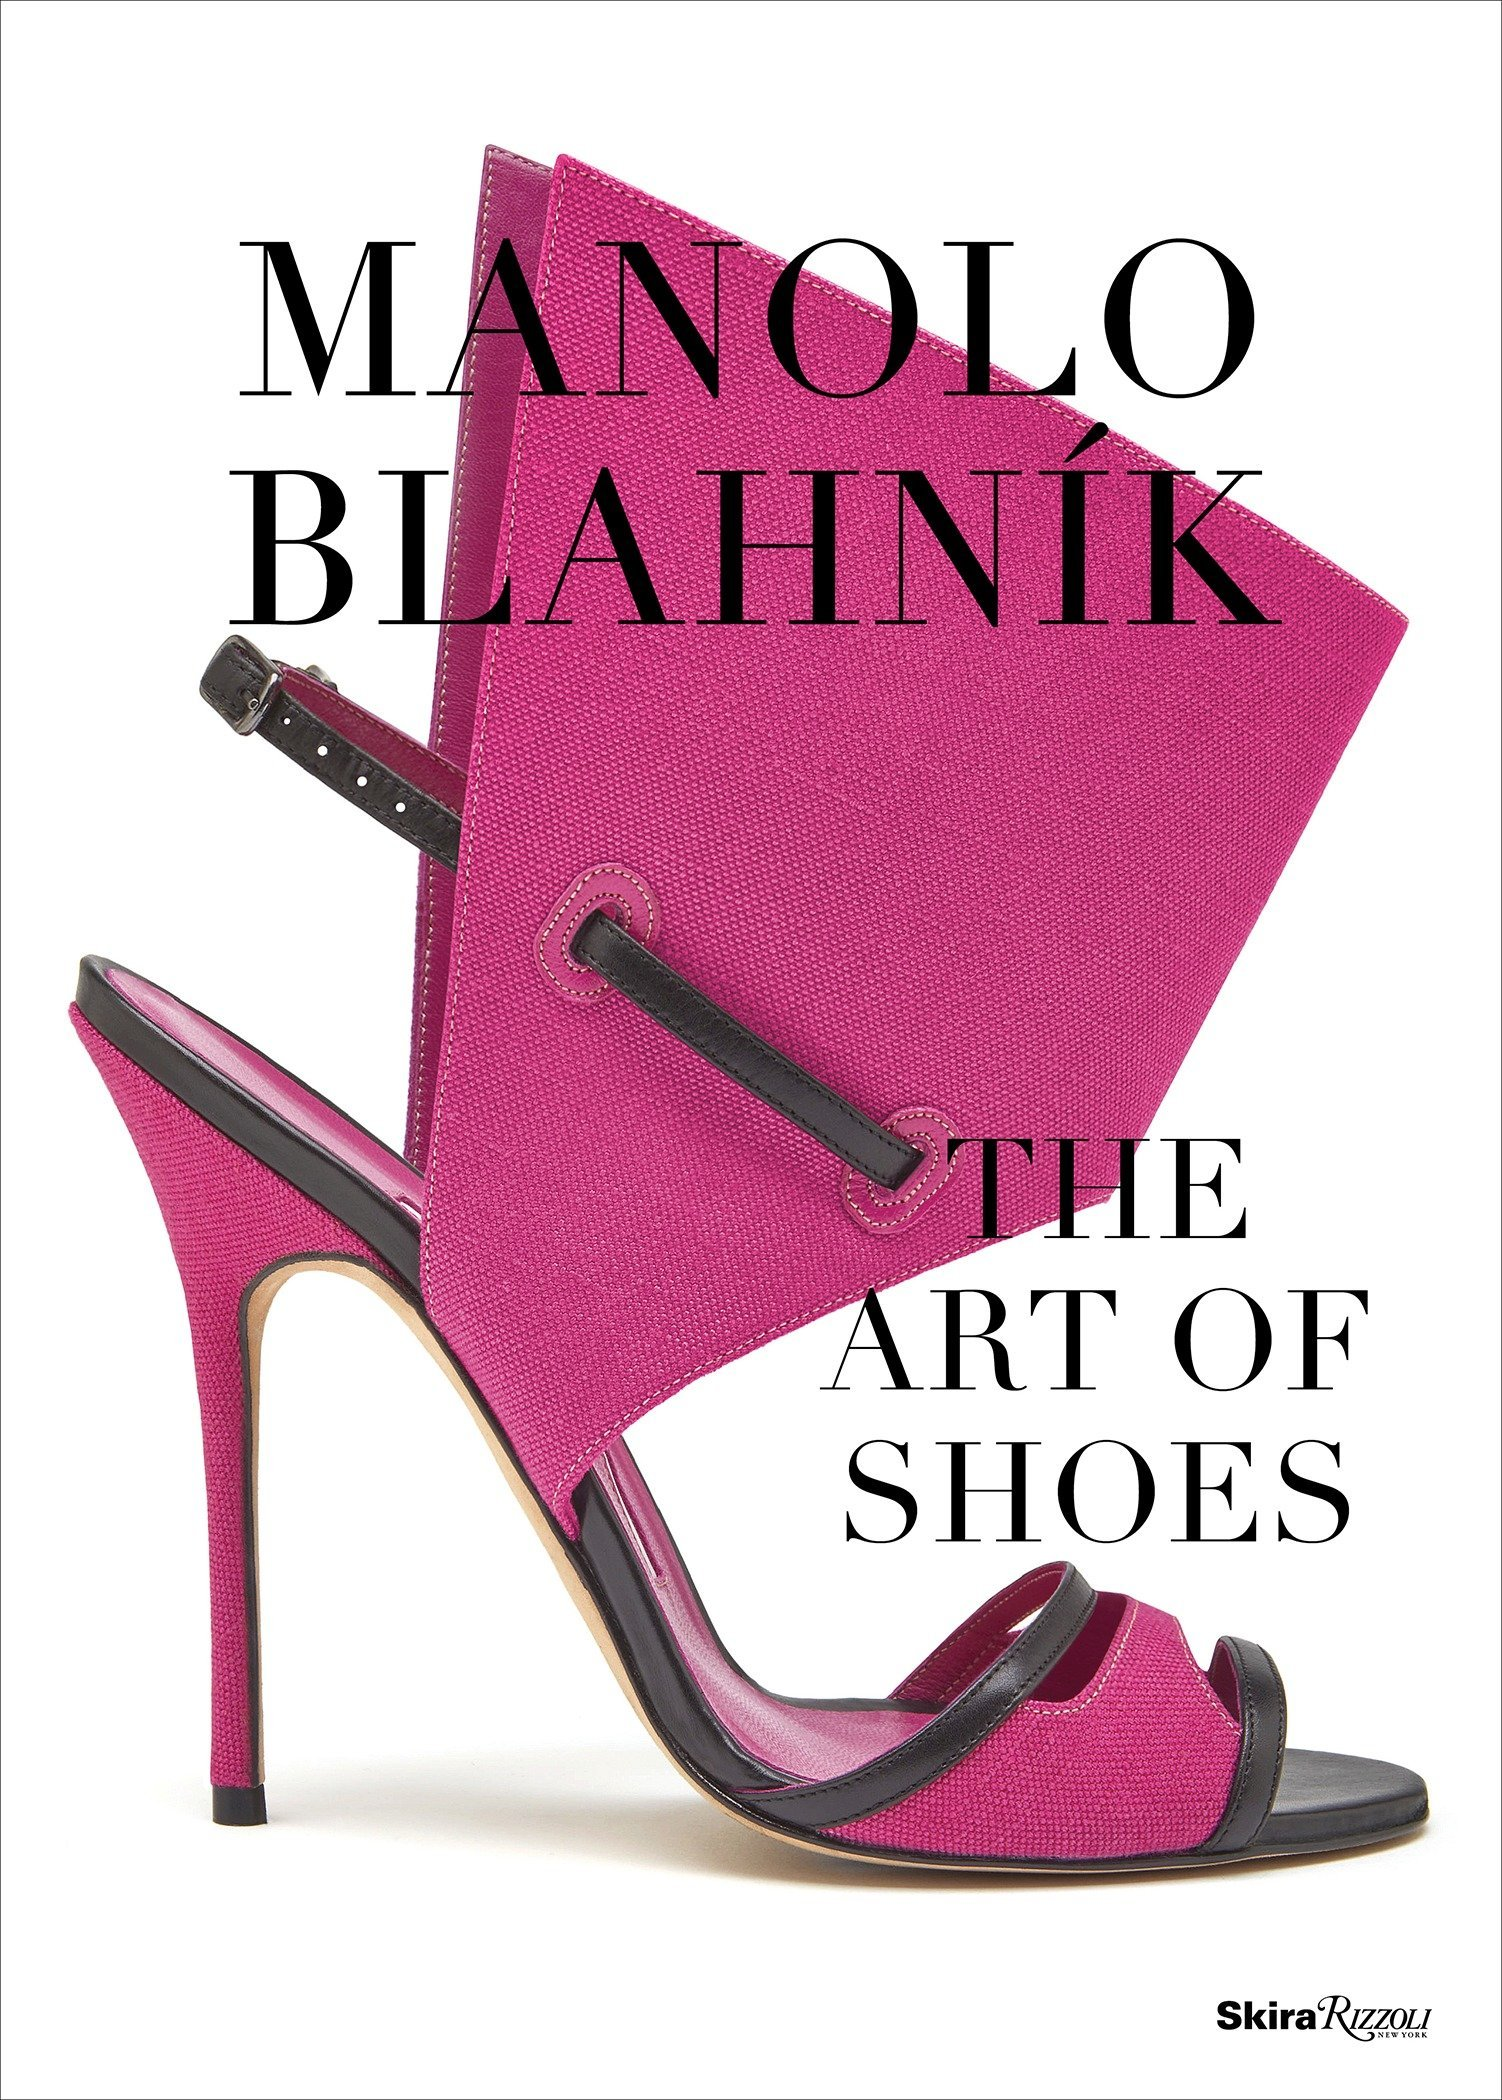 7504eabb3b5 Manolo Blahnik: The Art of Shoes: A Catalogue: Amazon.co.uk ...